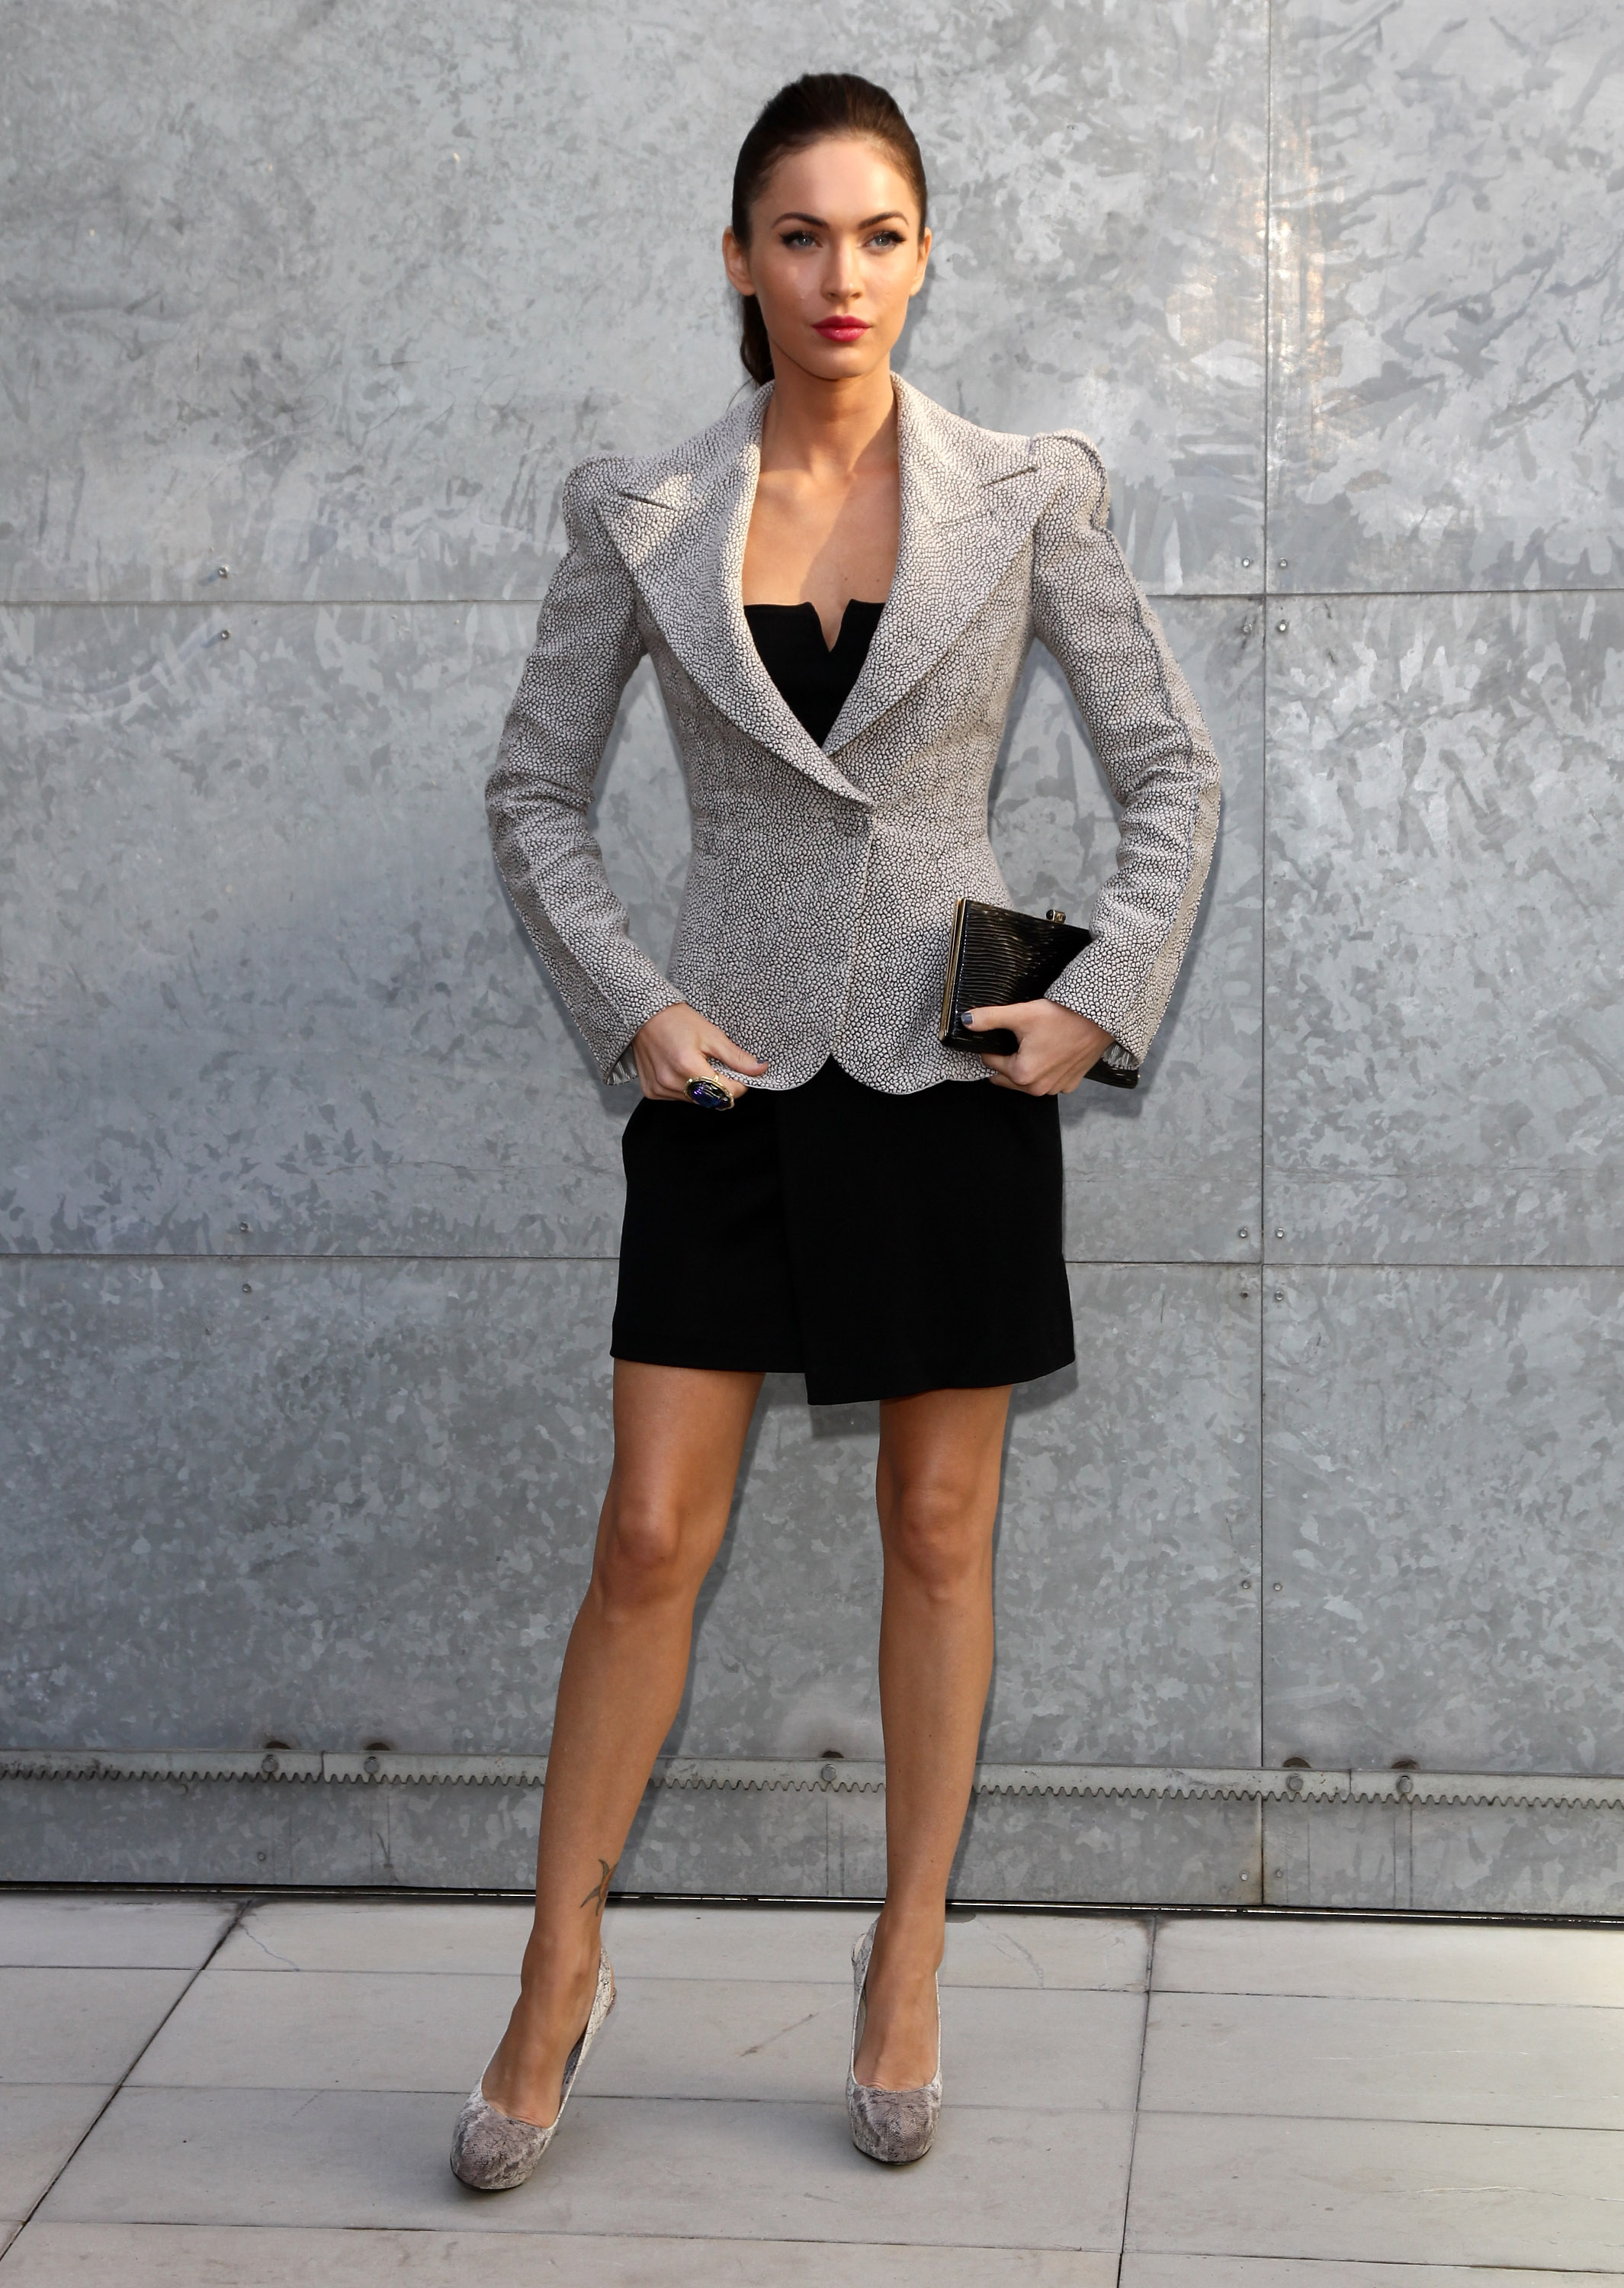 Image result for black models on blazers with fitted party dress